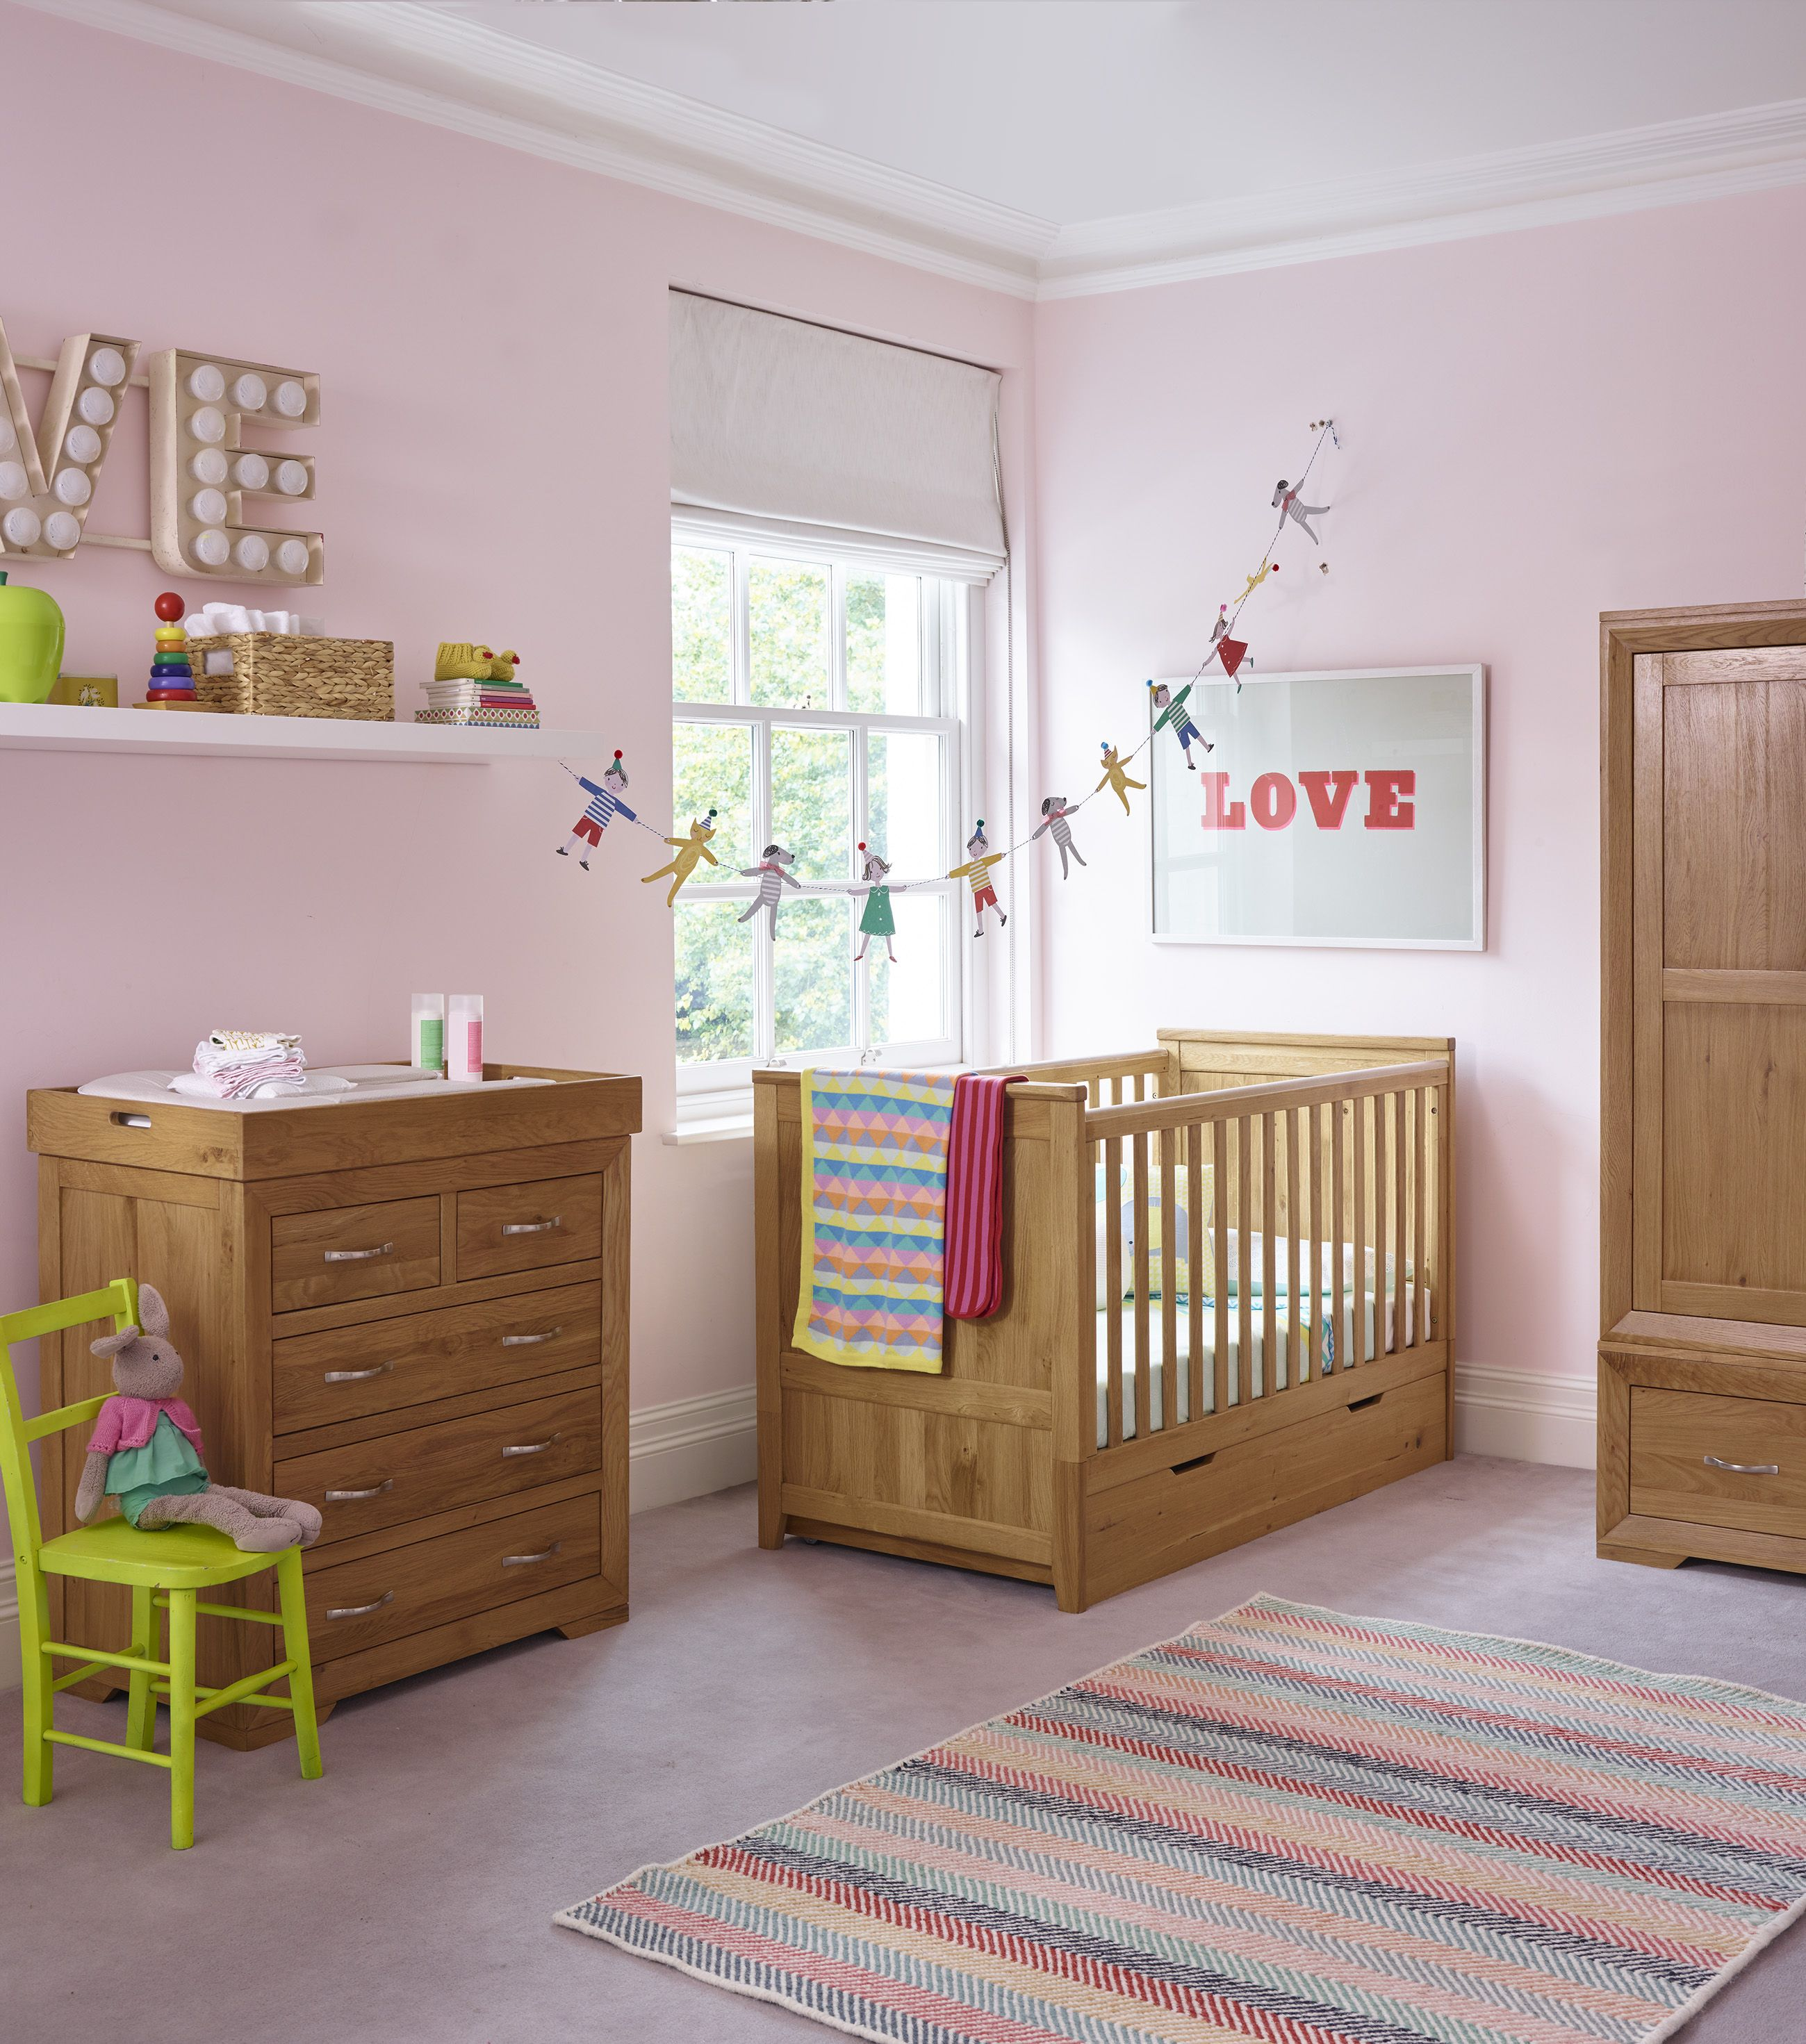 Bedroom Ideas Oak Furniture transform your baby's nursery to a child's bedroom with our